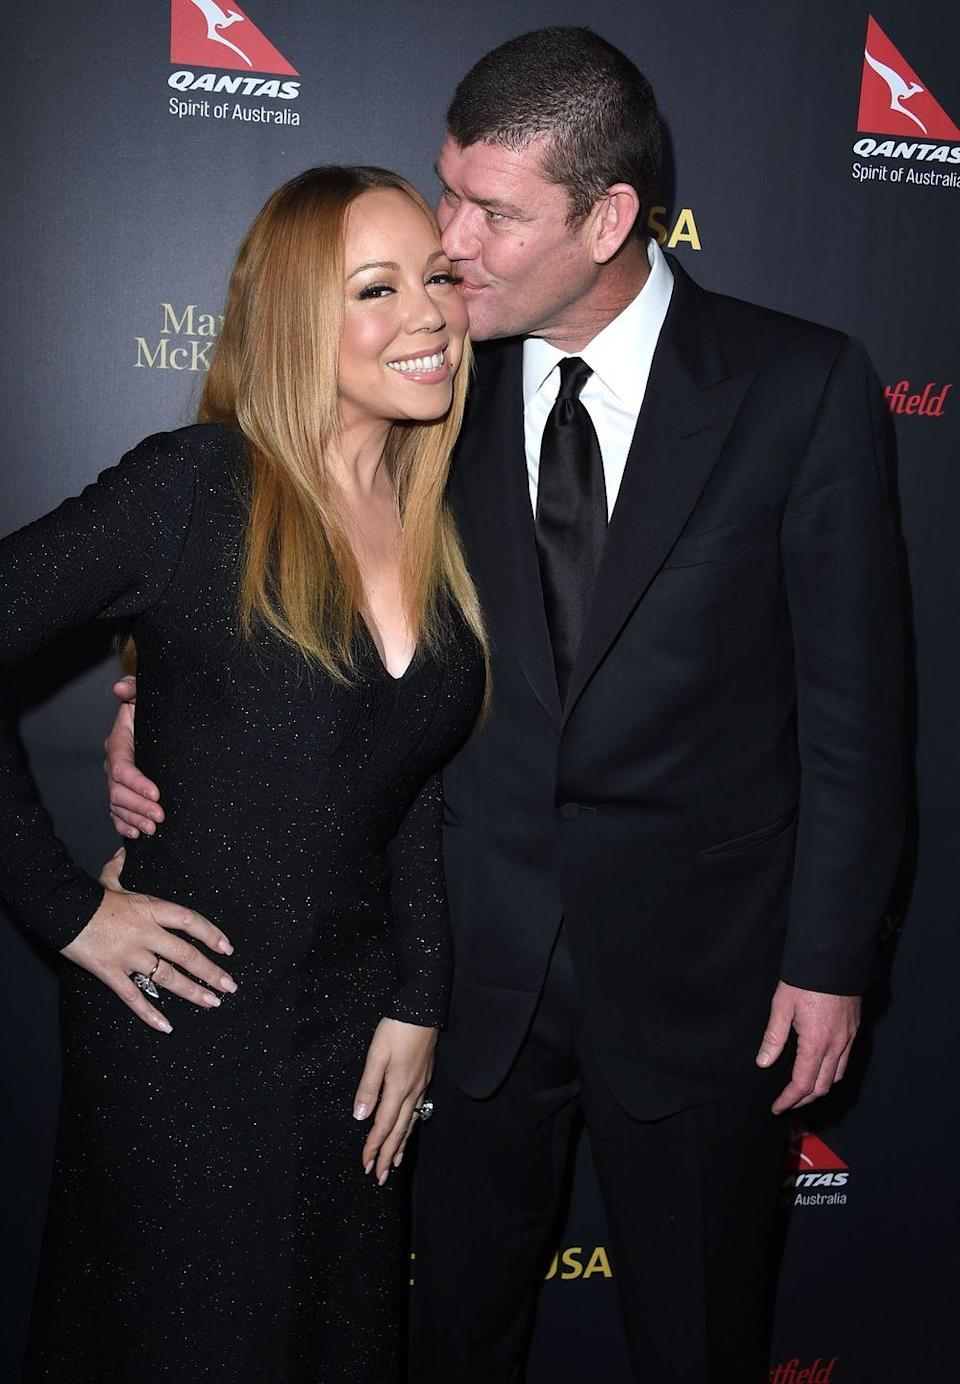 """<p>Long after the end of their engagement, Mariah still couldn't get rid of James, even in conversation. During a press conference in Tel Aviv, Mimi was asked about her ex billionaire fiancé's alleged illegal dealings with former Israeli Prime Minister Benjamin Netanyahu. </p><p>'I don't know where the motherfucker is,' Carey said, via <a href=""""https://www.hollywoodreporter.com/news/mariah-carey-james-packer-controversy-israel-1016877"""" rel=""""nofollow noopener"""" target=""""_blank"""" data-ylk=""""slk:The Hollywood Reporter"""" class=""""link rapid-noclick-resp"""">The Hollywood Reporter</a>. 'How am I supposed to know? I don't know, for real. I really have no idea about the political stuff that goes on. I don't pay attention to it.' </p>"""